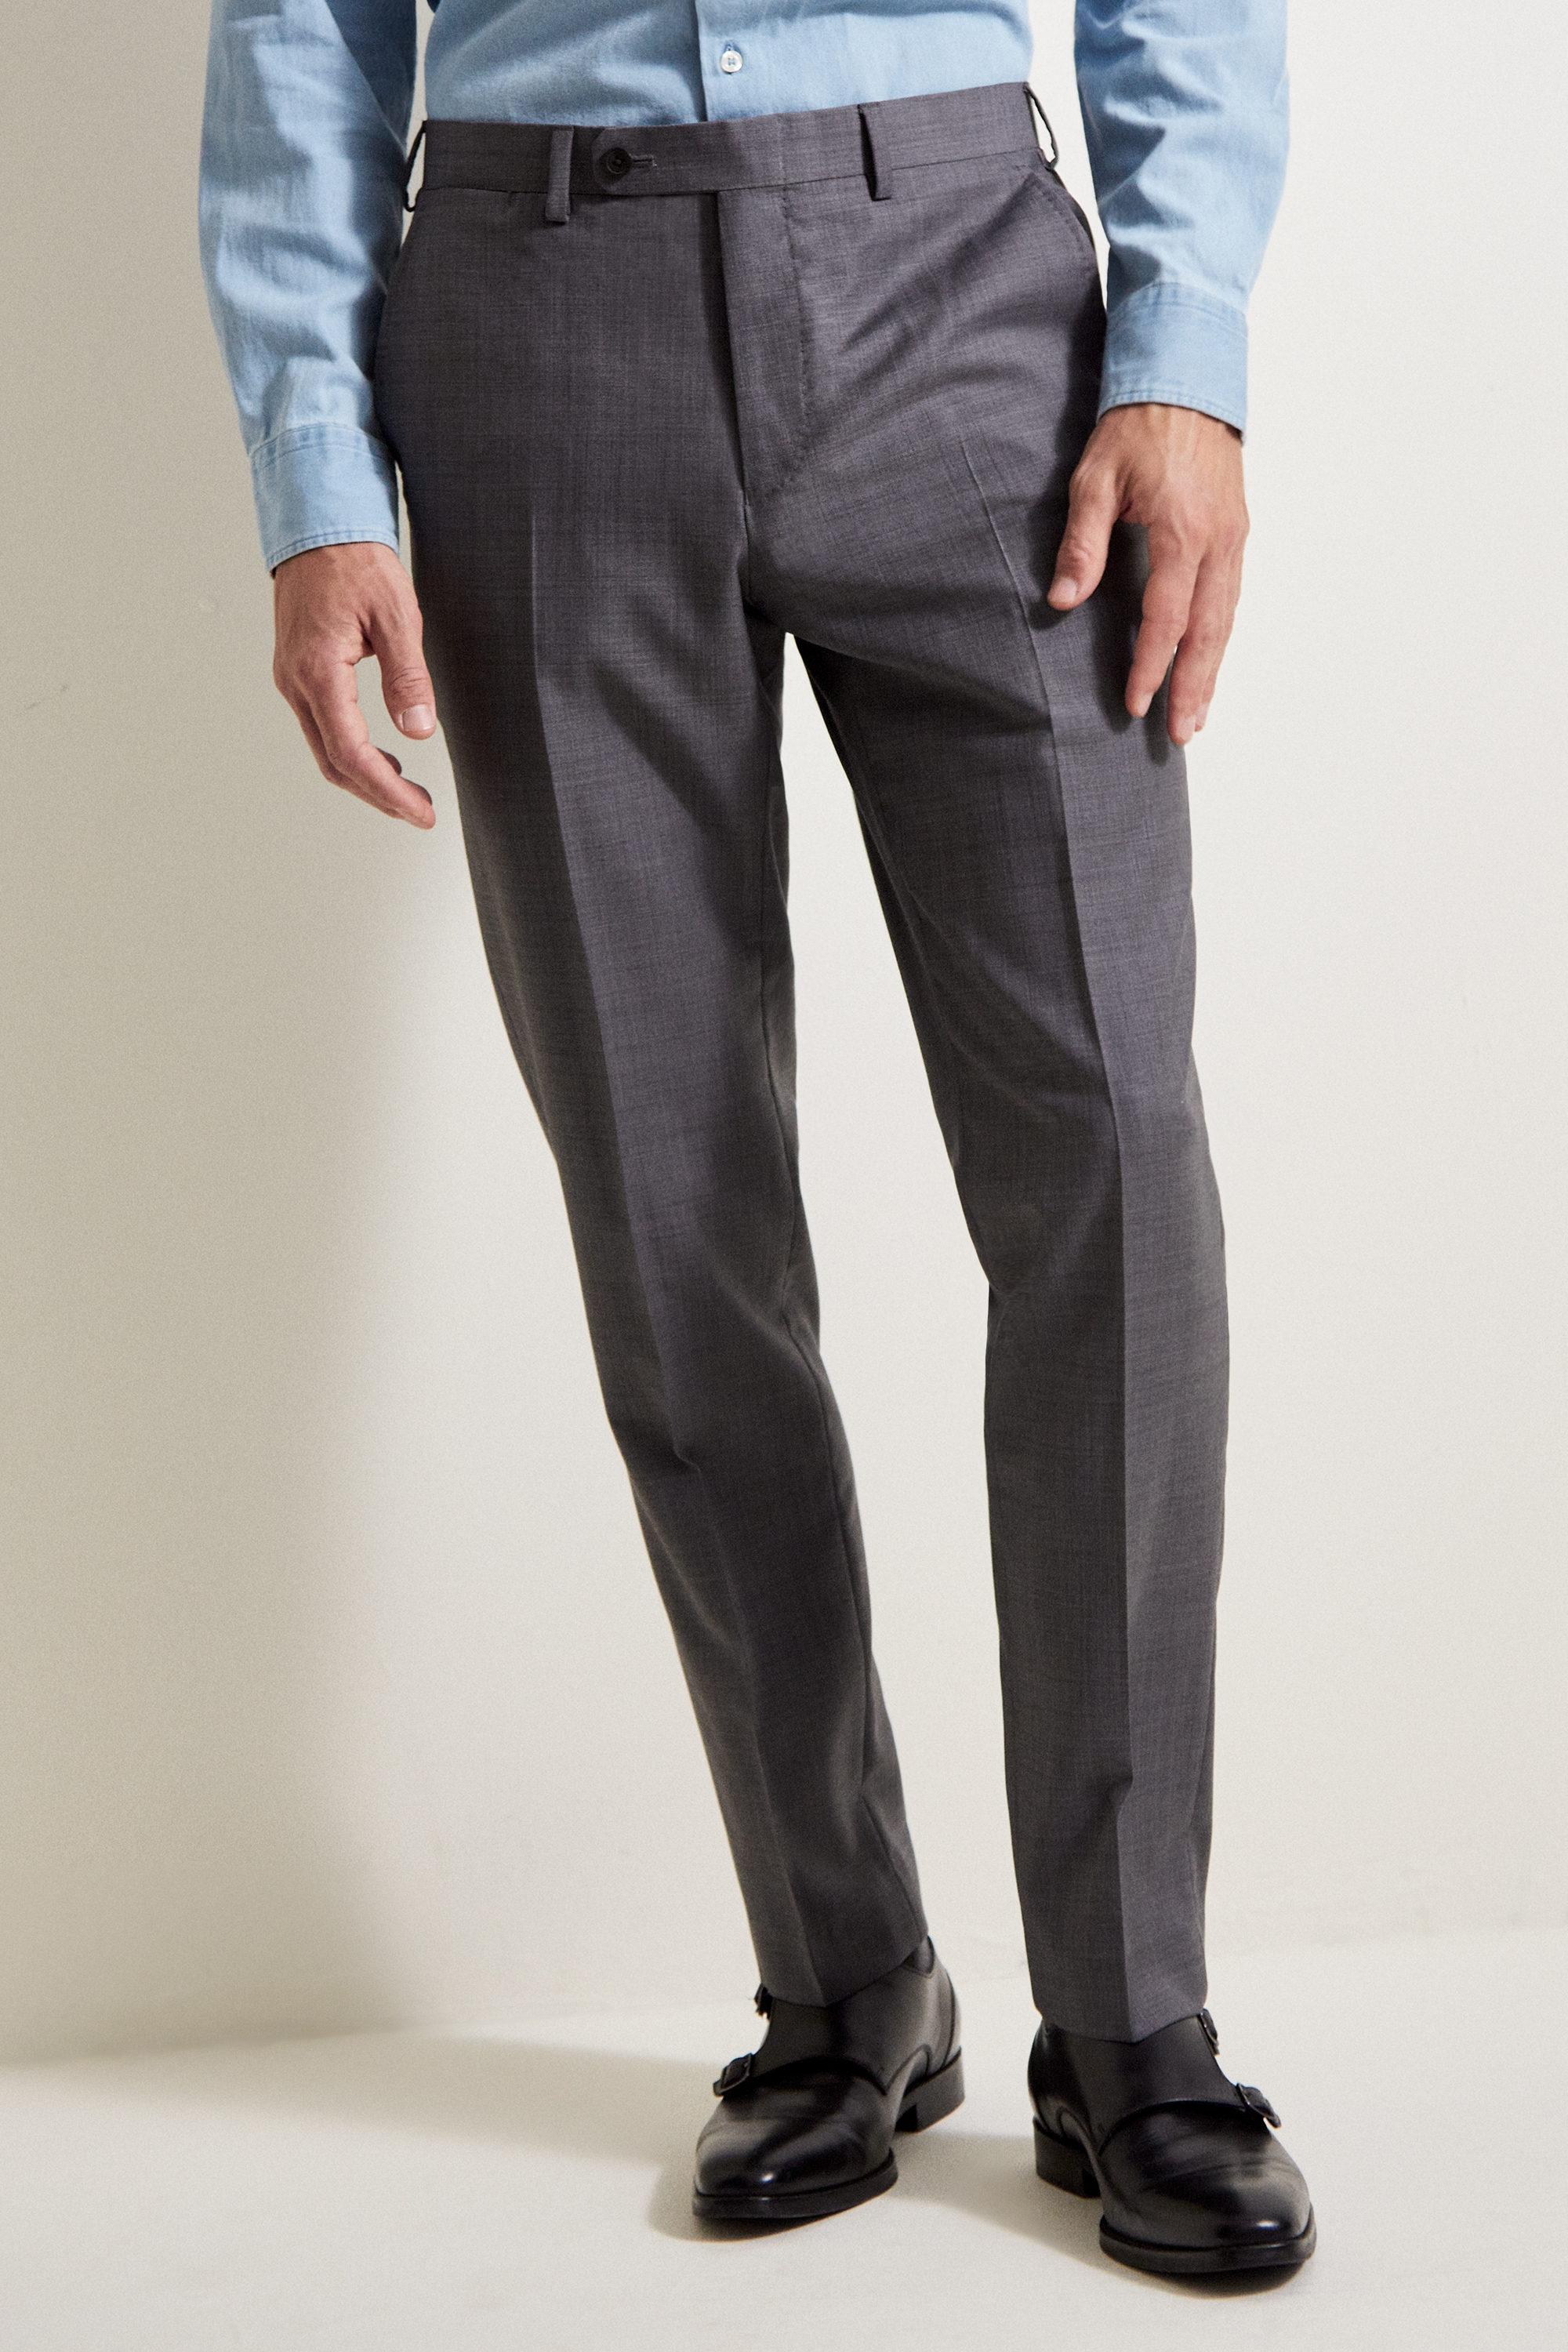 Visit New Sale Online Ermenegildo Zegna tailored fitted trousers - Grey Buy Cheap Outlet Free Shipping Collections Best Seller Fake JpzL5Ekj